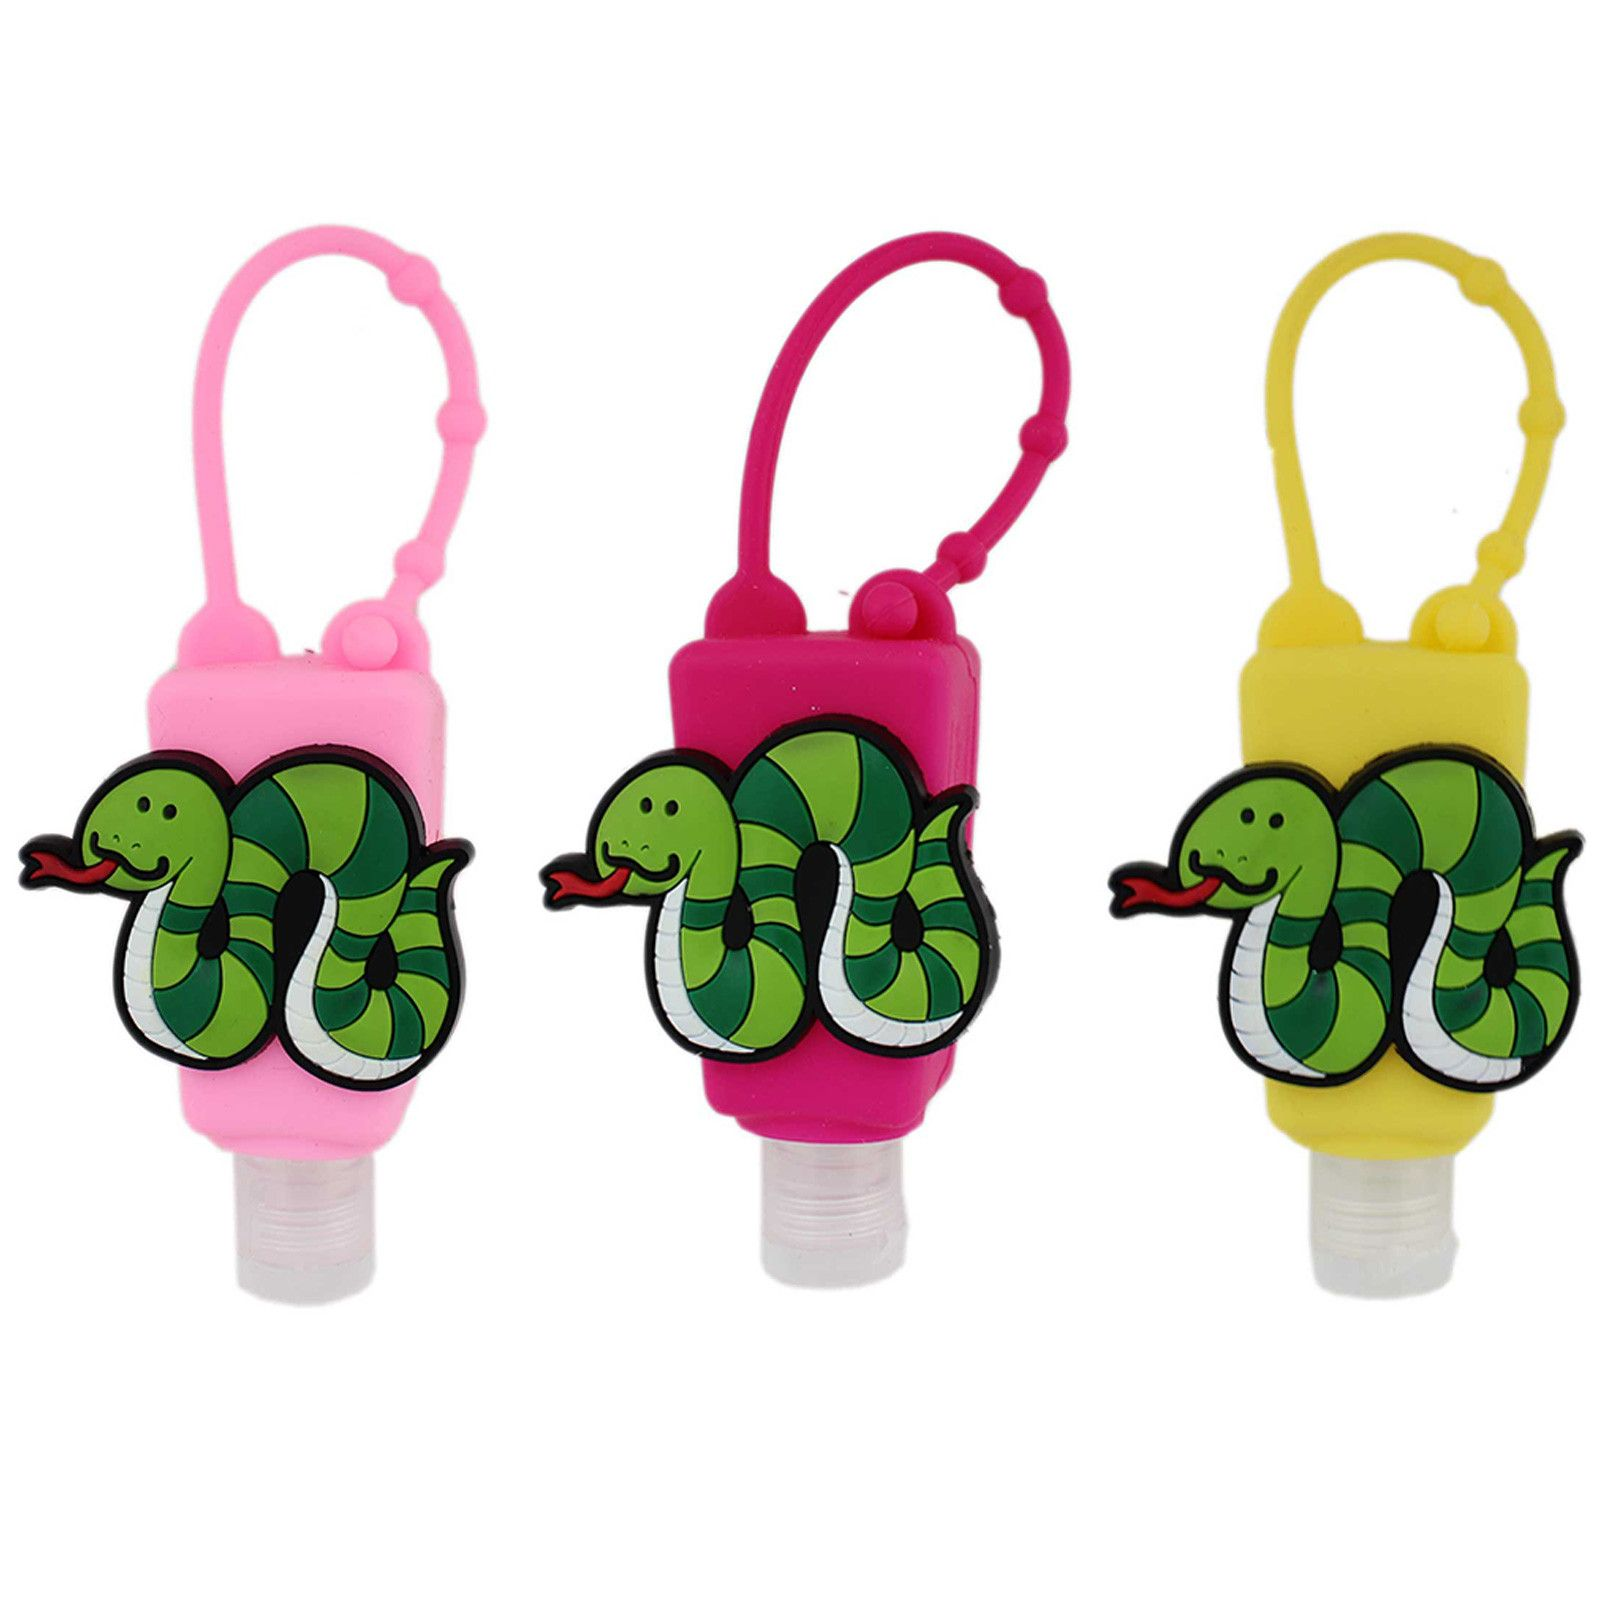 Hand Sanitizer For Kids Promotional With Silicone Holder Hand Gel